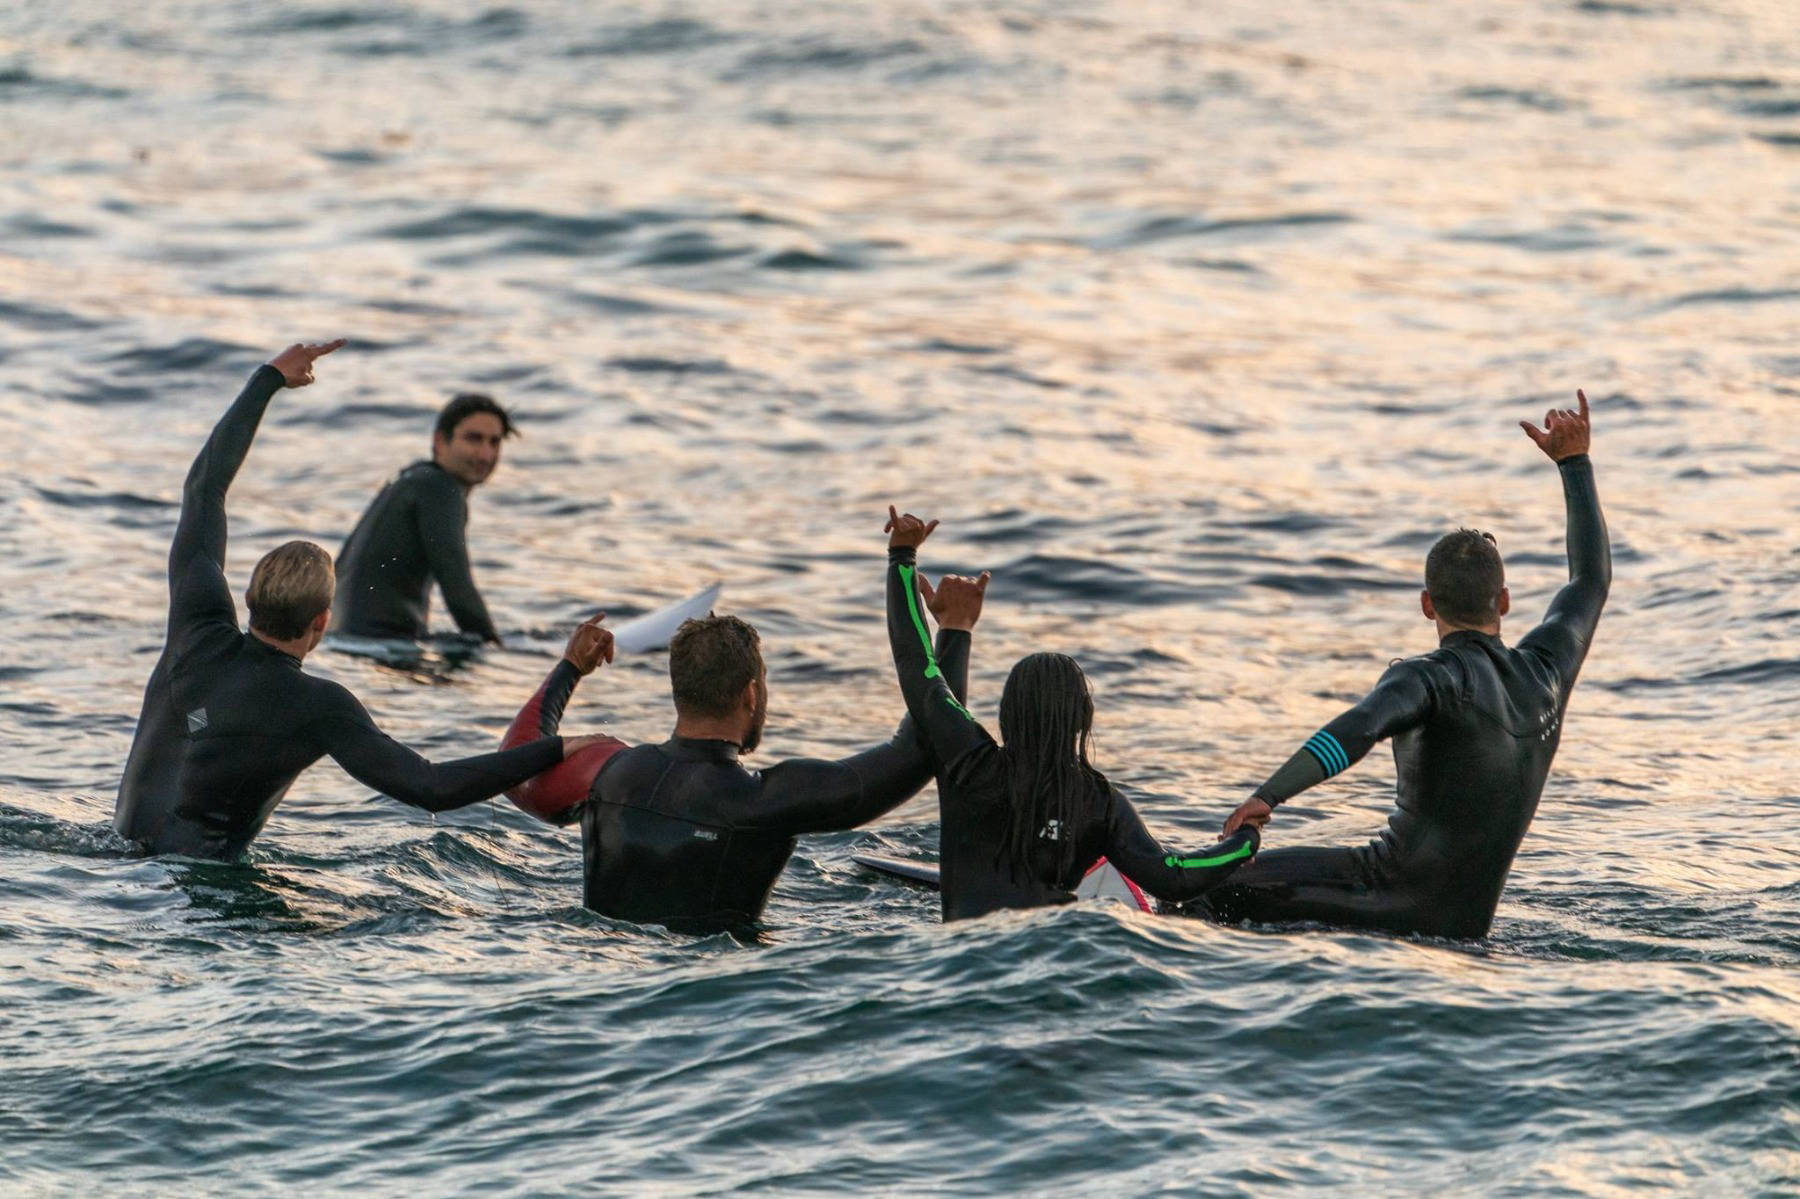 Surfing group in the water